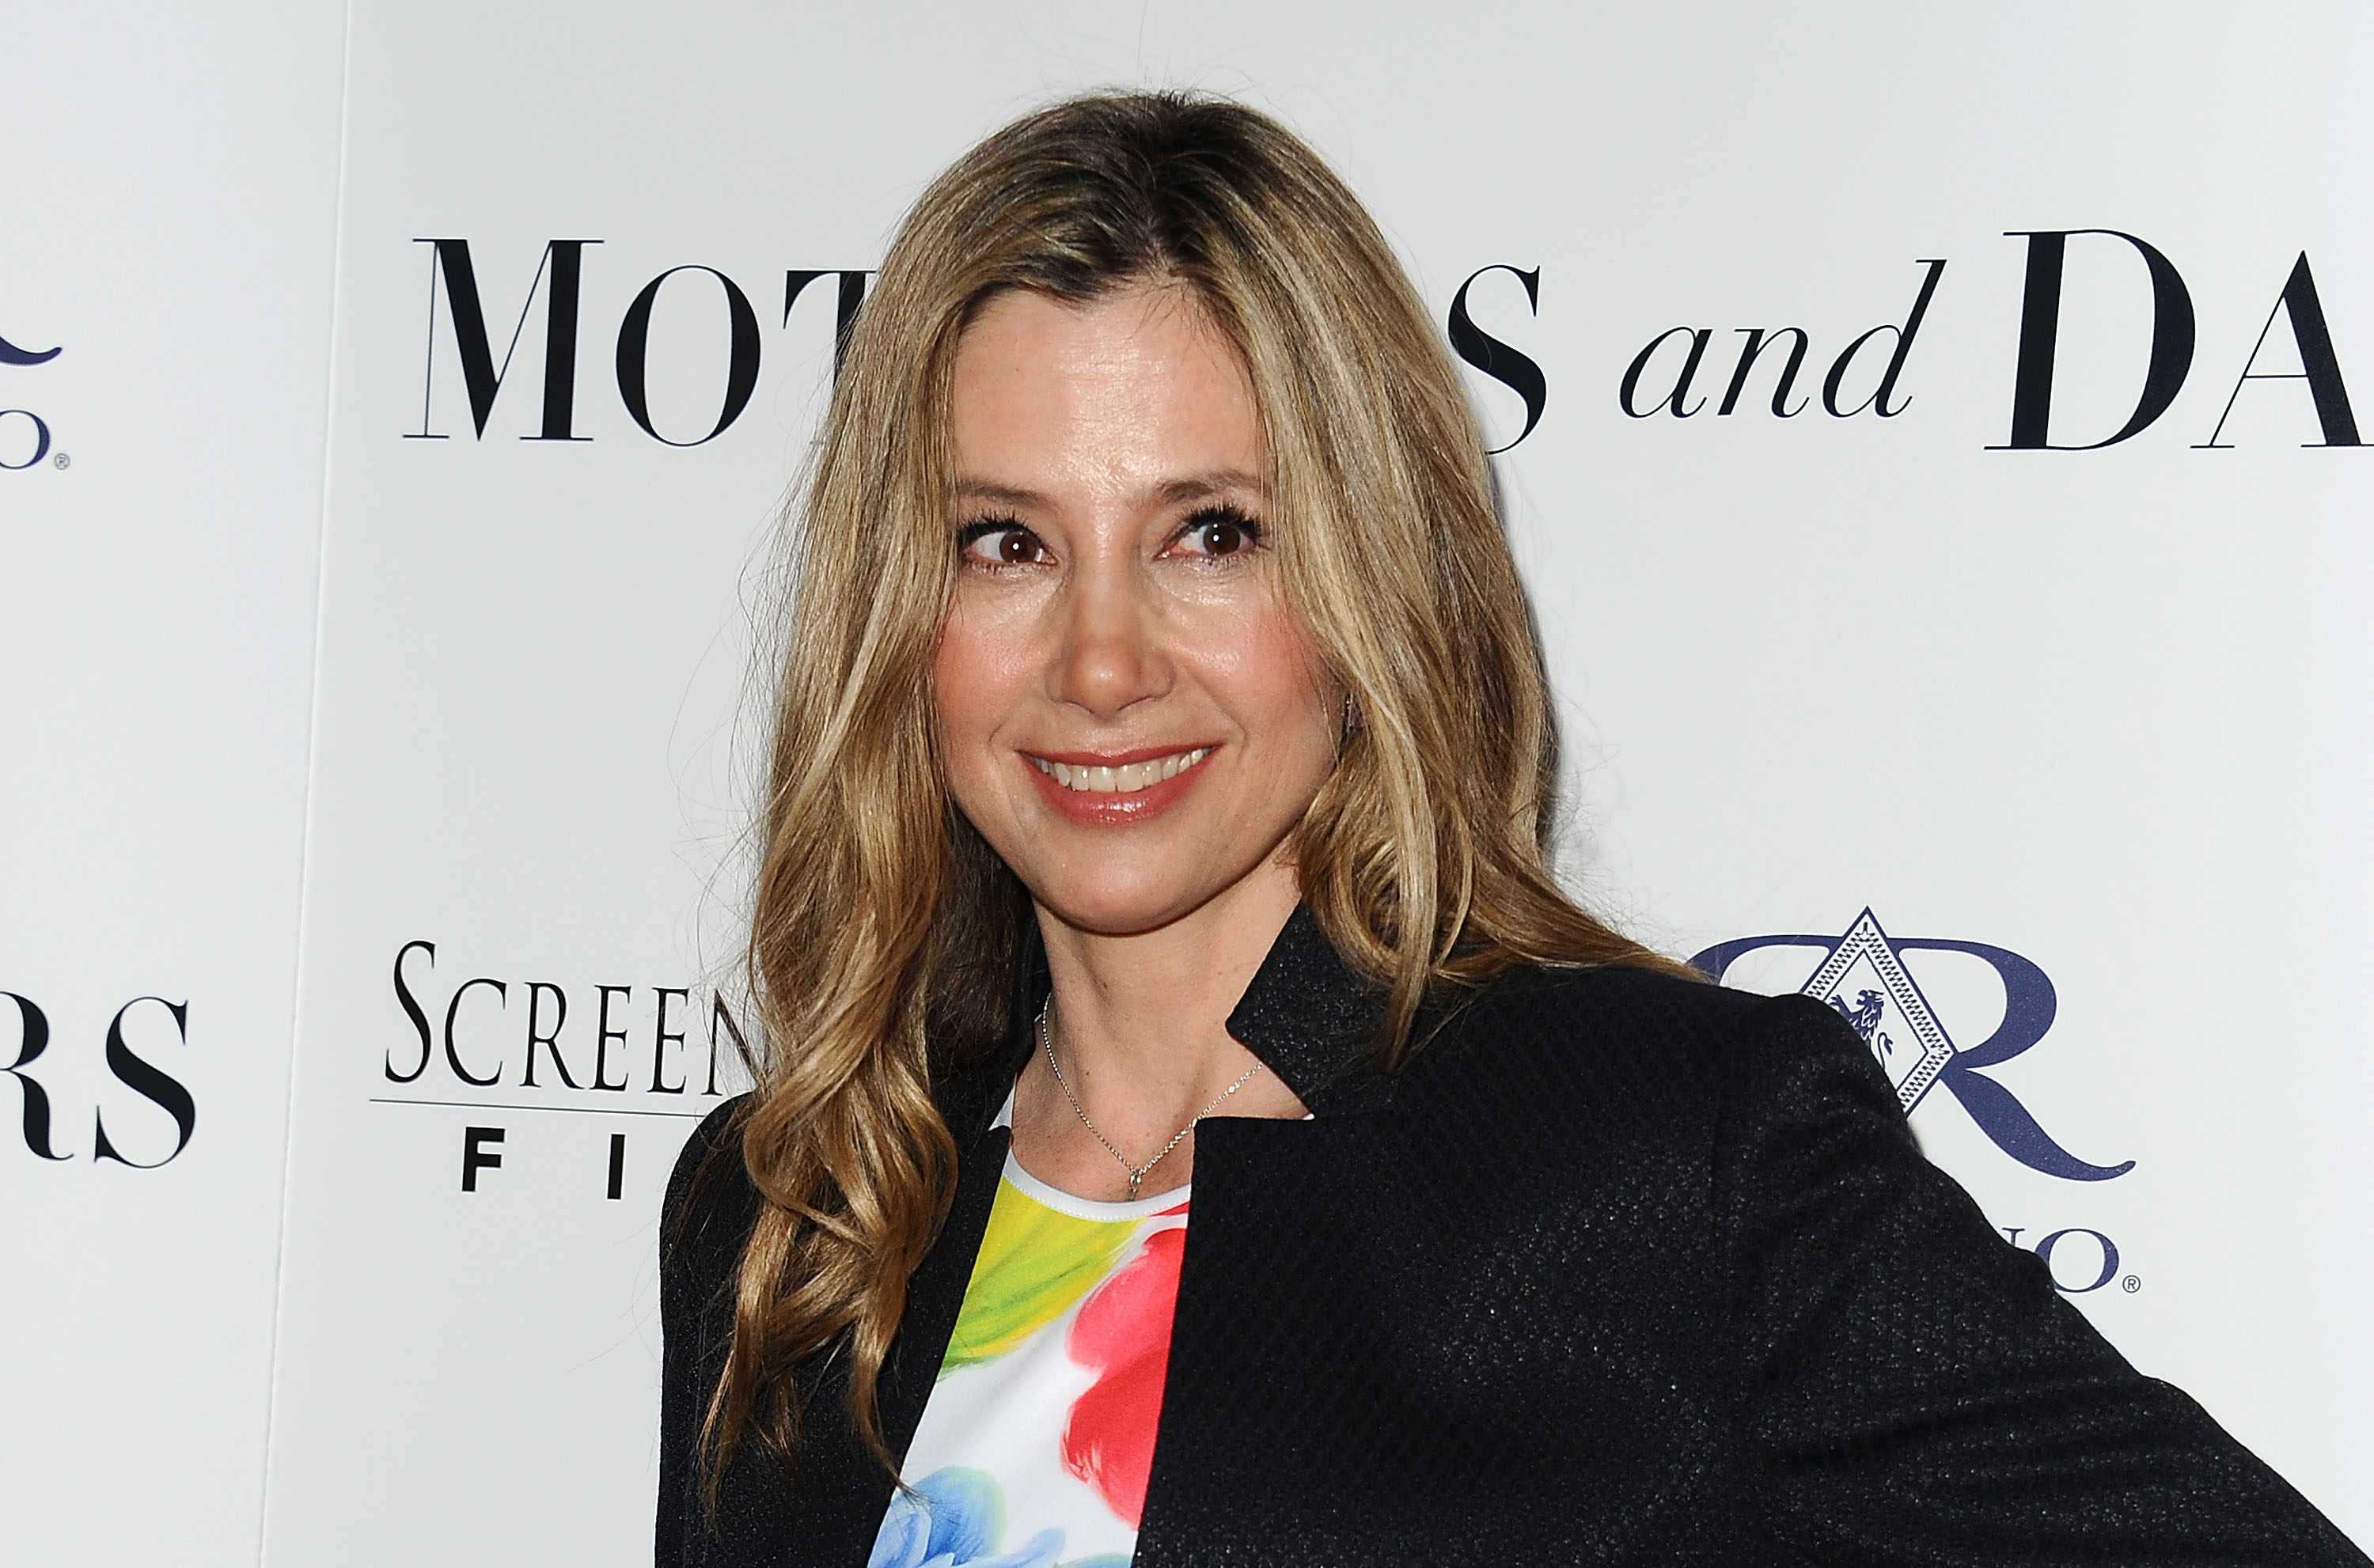 Actress Mira Sorvino attends the premiere of  Mothers and Daughters  at The London on April 28, 2016 in West Hollywood, California.